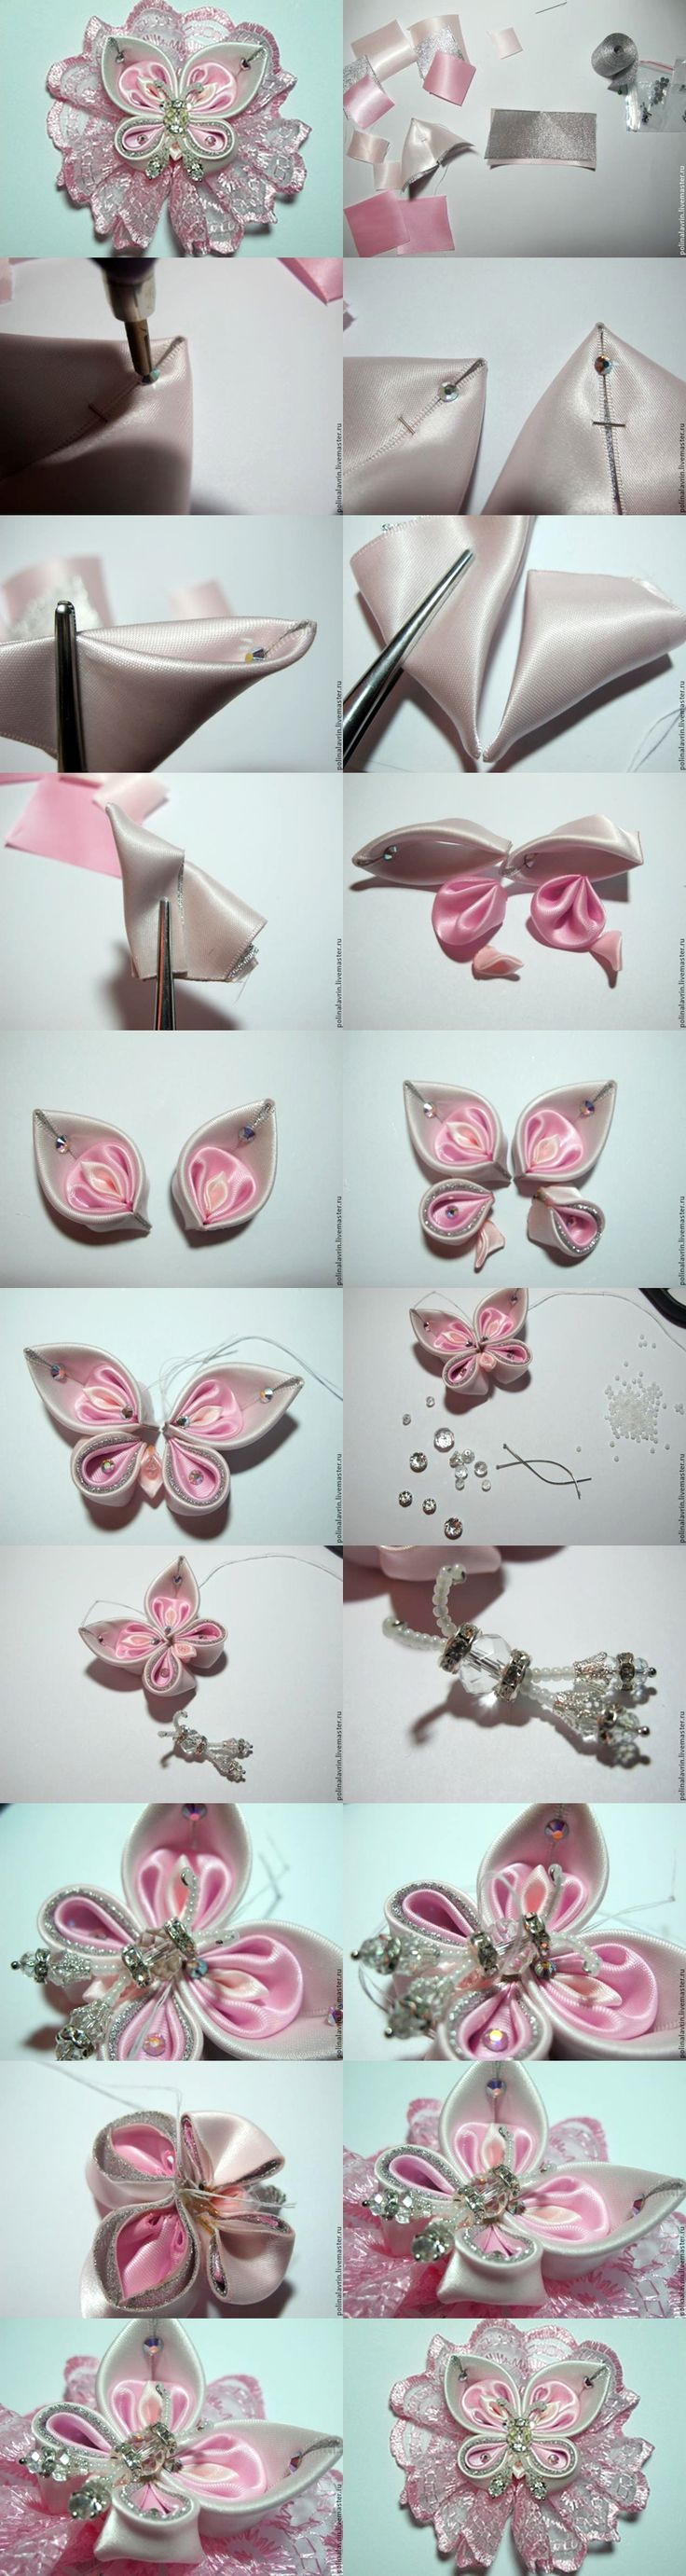 DIY Sweet Kanzashi Butterfly | www.FabArtDIY.com LIKE Us on Facebook ==> https://www.facebook.com/FabArtDIY